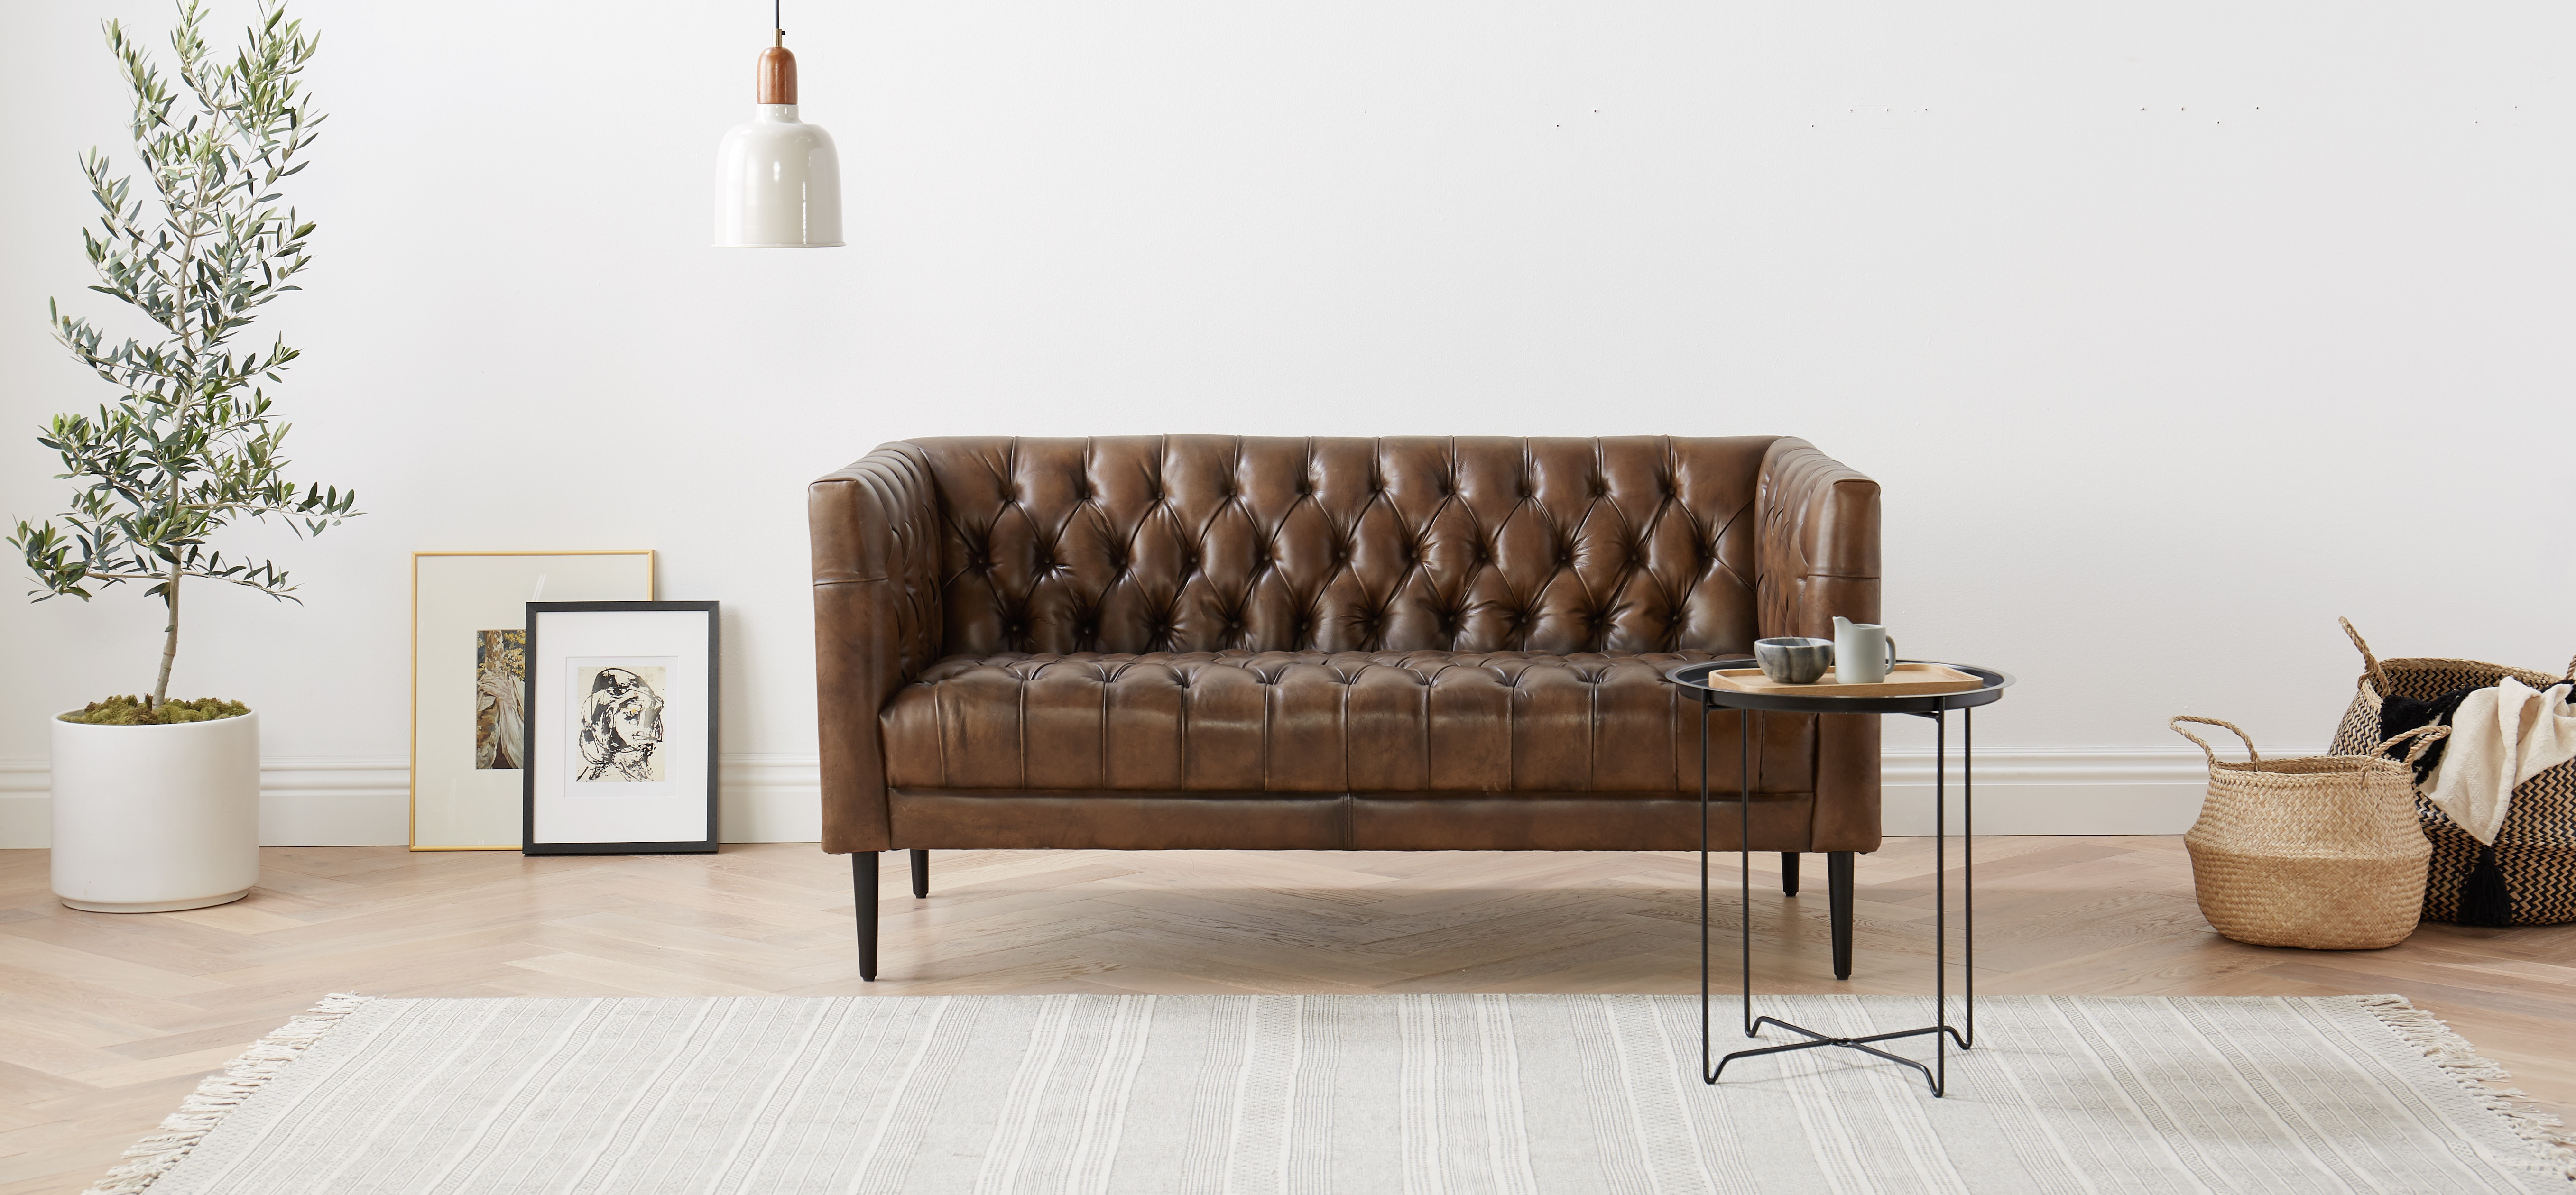 Vaughn Leather Leather Apartment Sofa by Joybrid